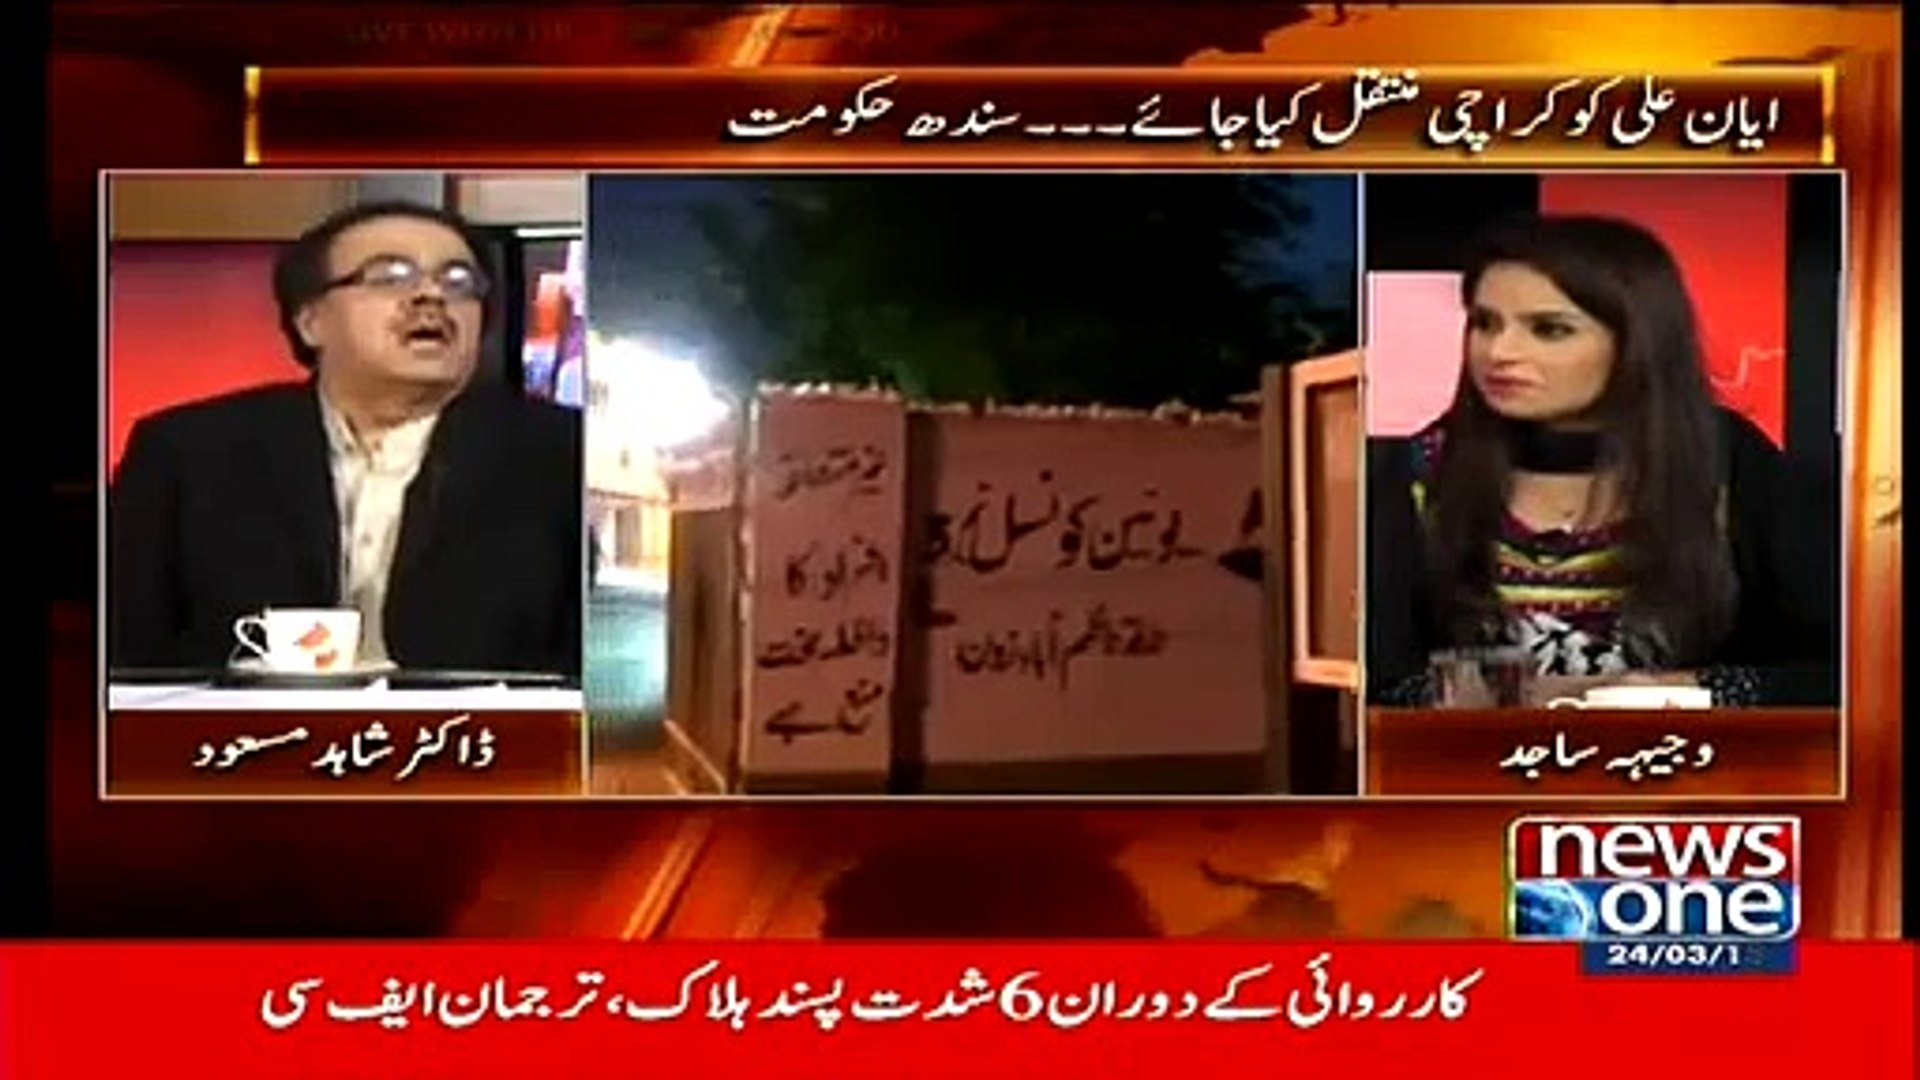 Asif Ali Zardari & Parvez Musharraf Refused To Remove Barriers Dr Shahid Masood News One